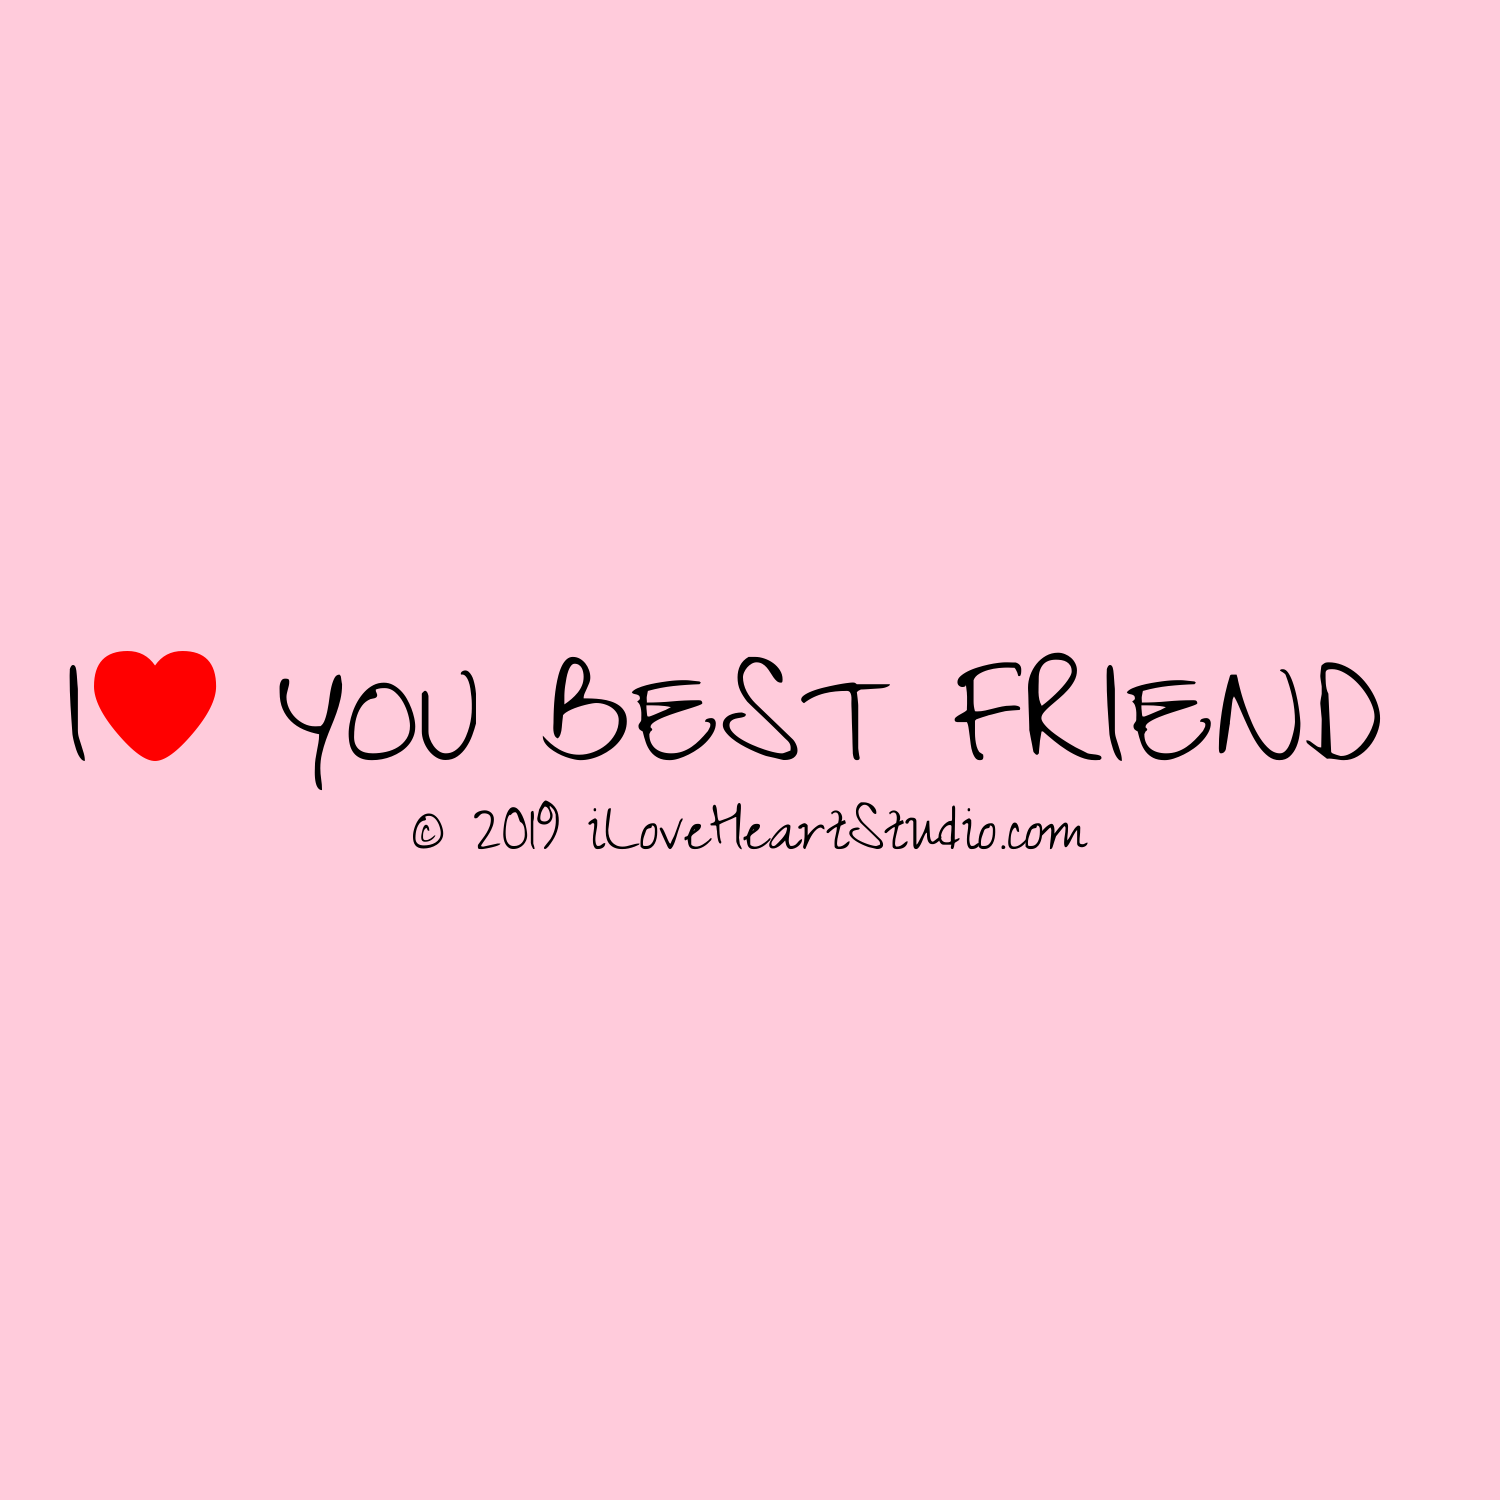 I Love You Bestfriend Quotes Simple Best Friend Quote I Love You Gallery For Gt I Love You Best